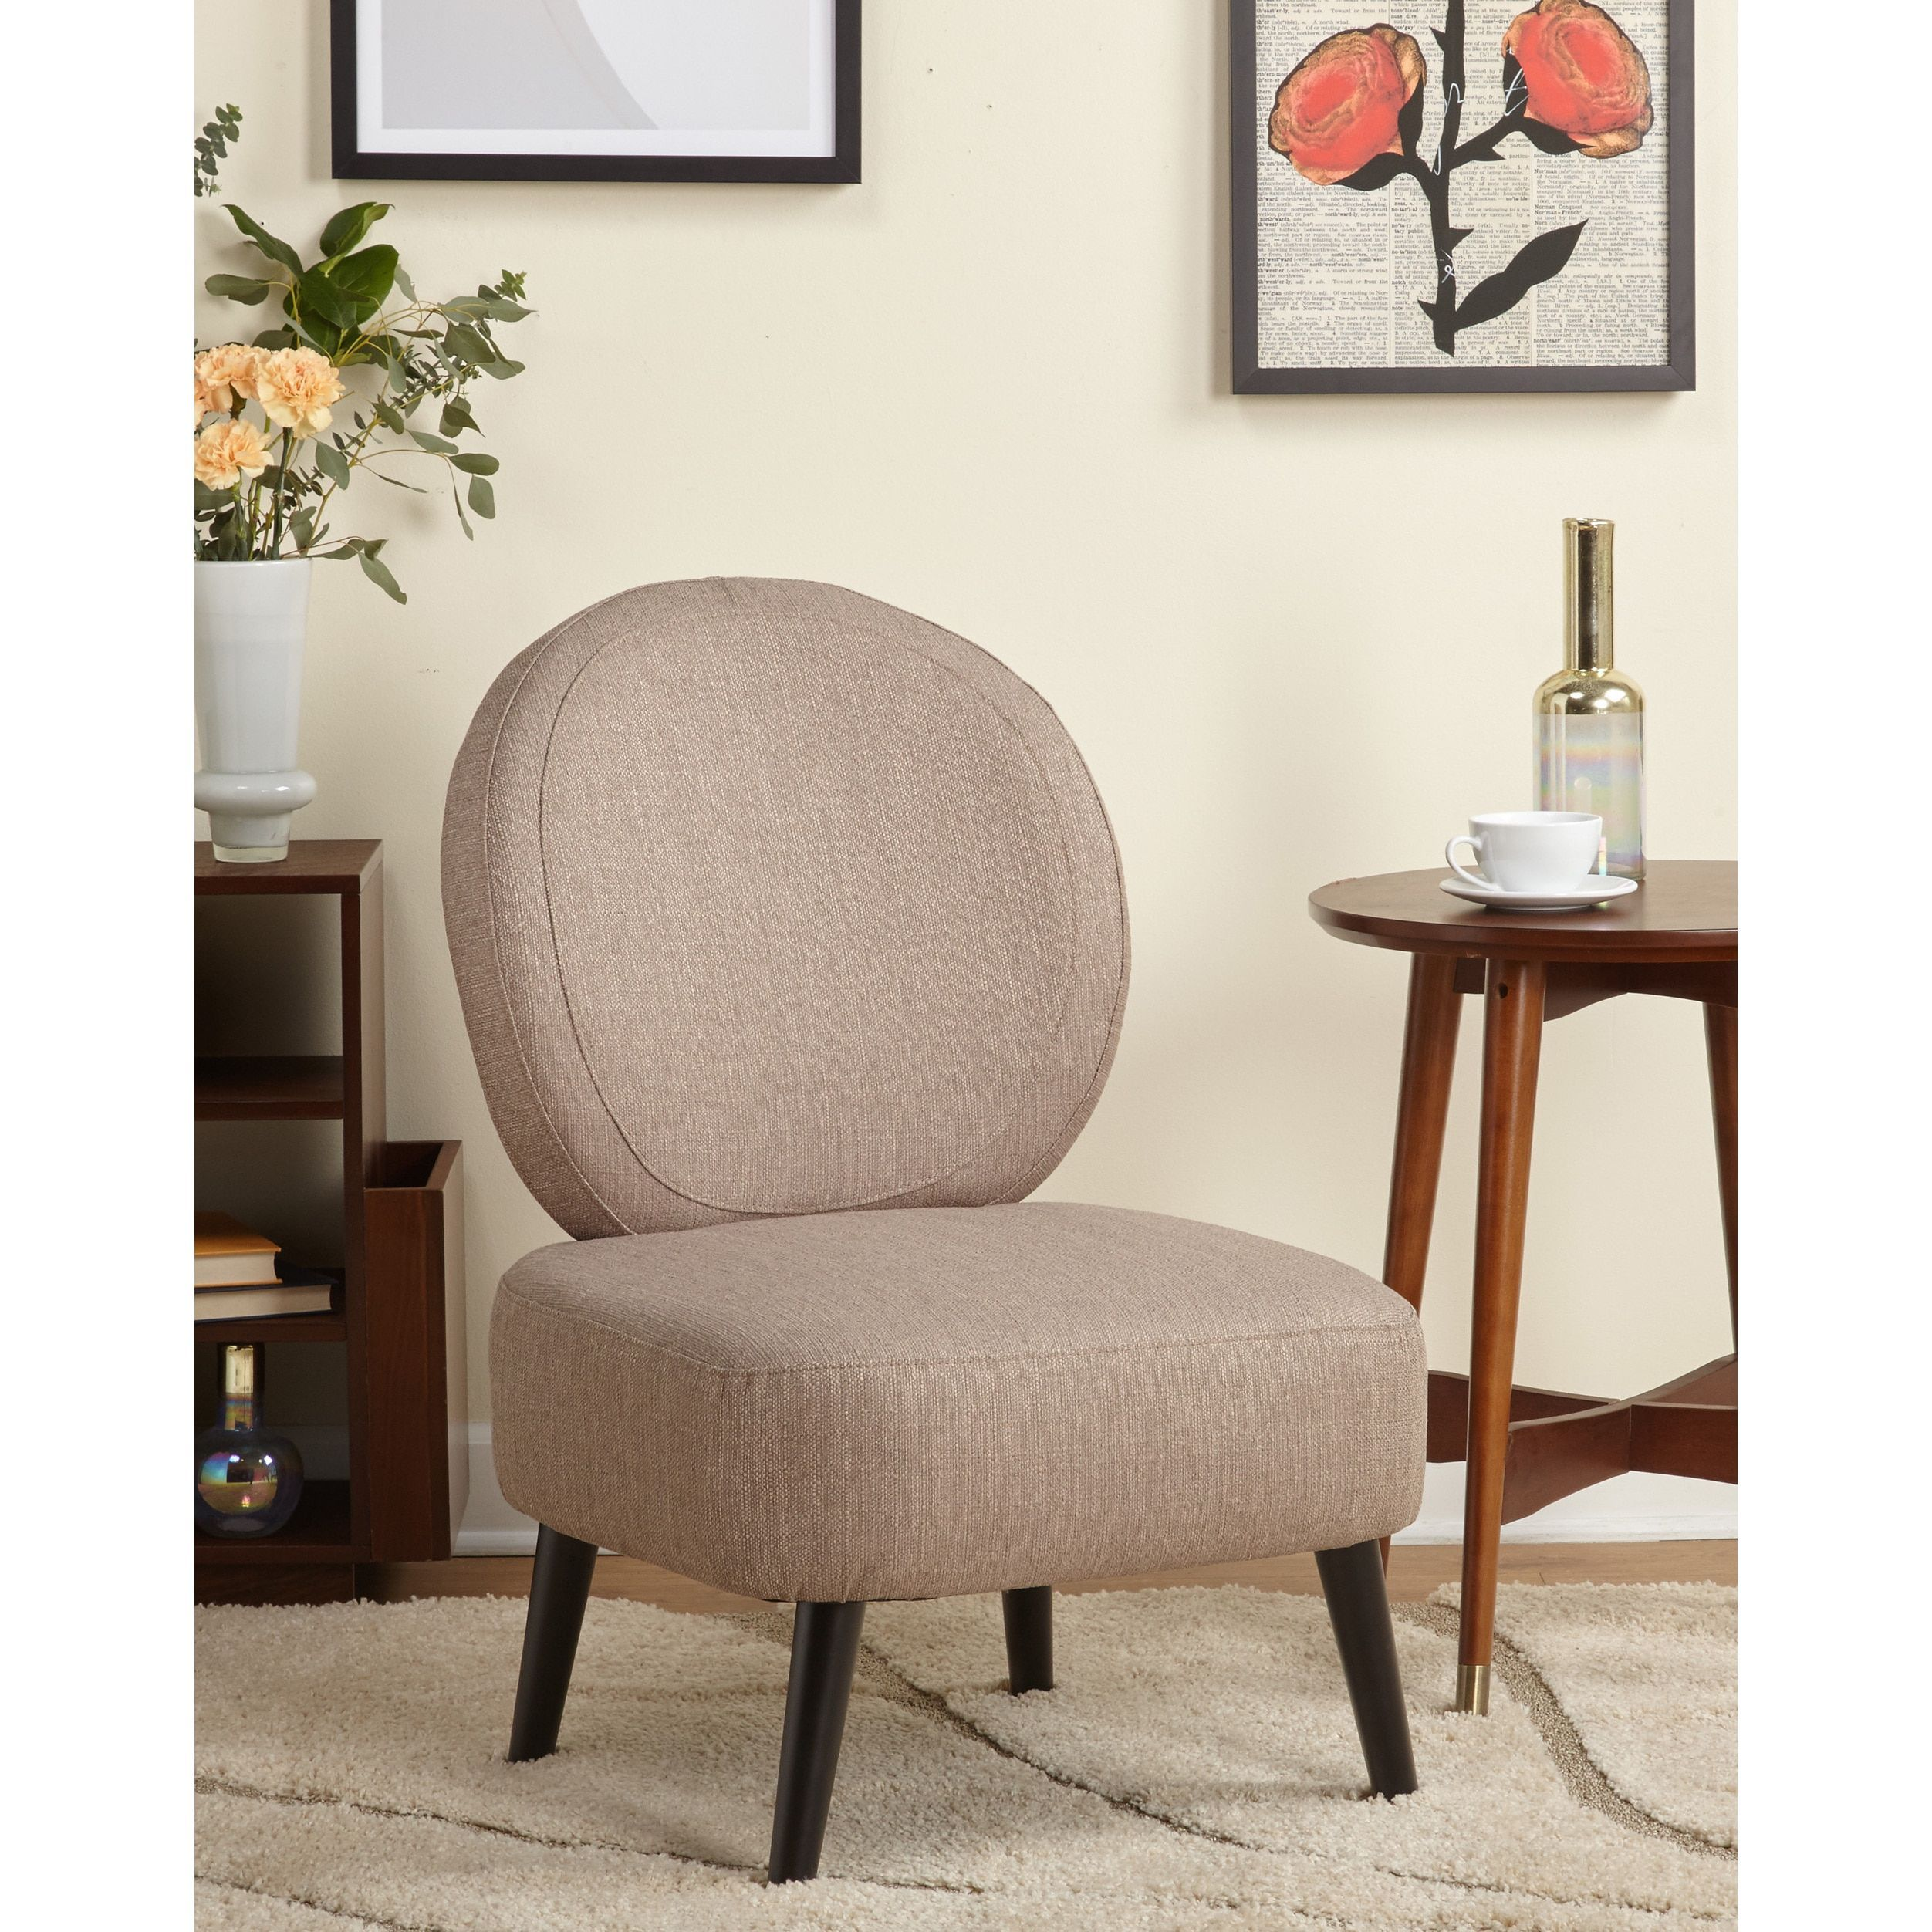 Simple Living Dana Mid Century Accent Chair Taupe Brown Fabric